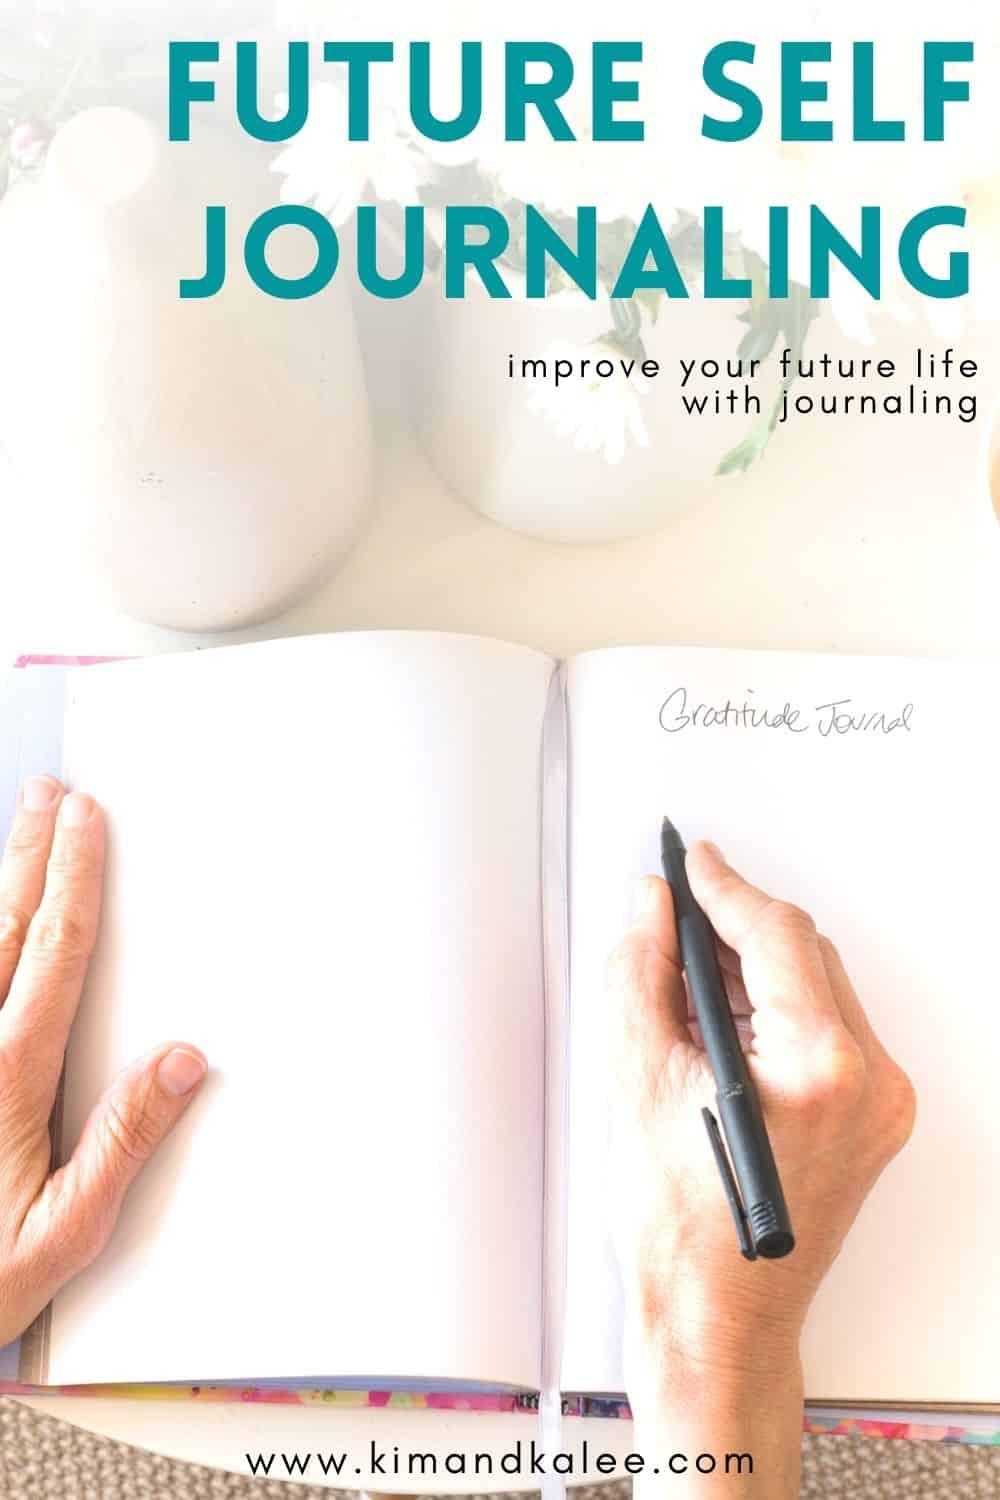 """photo of woman writing in a journal with text overlay that says """"how to do future self journaling"""""""